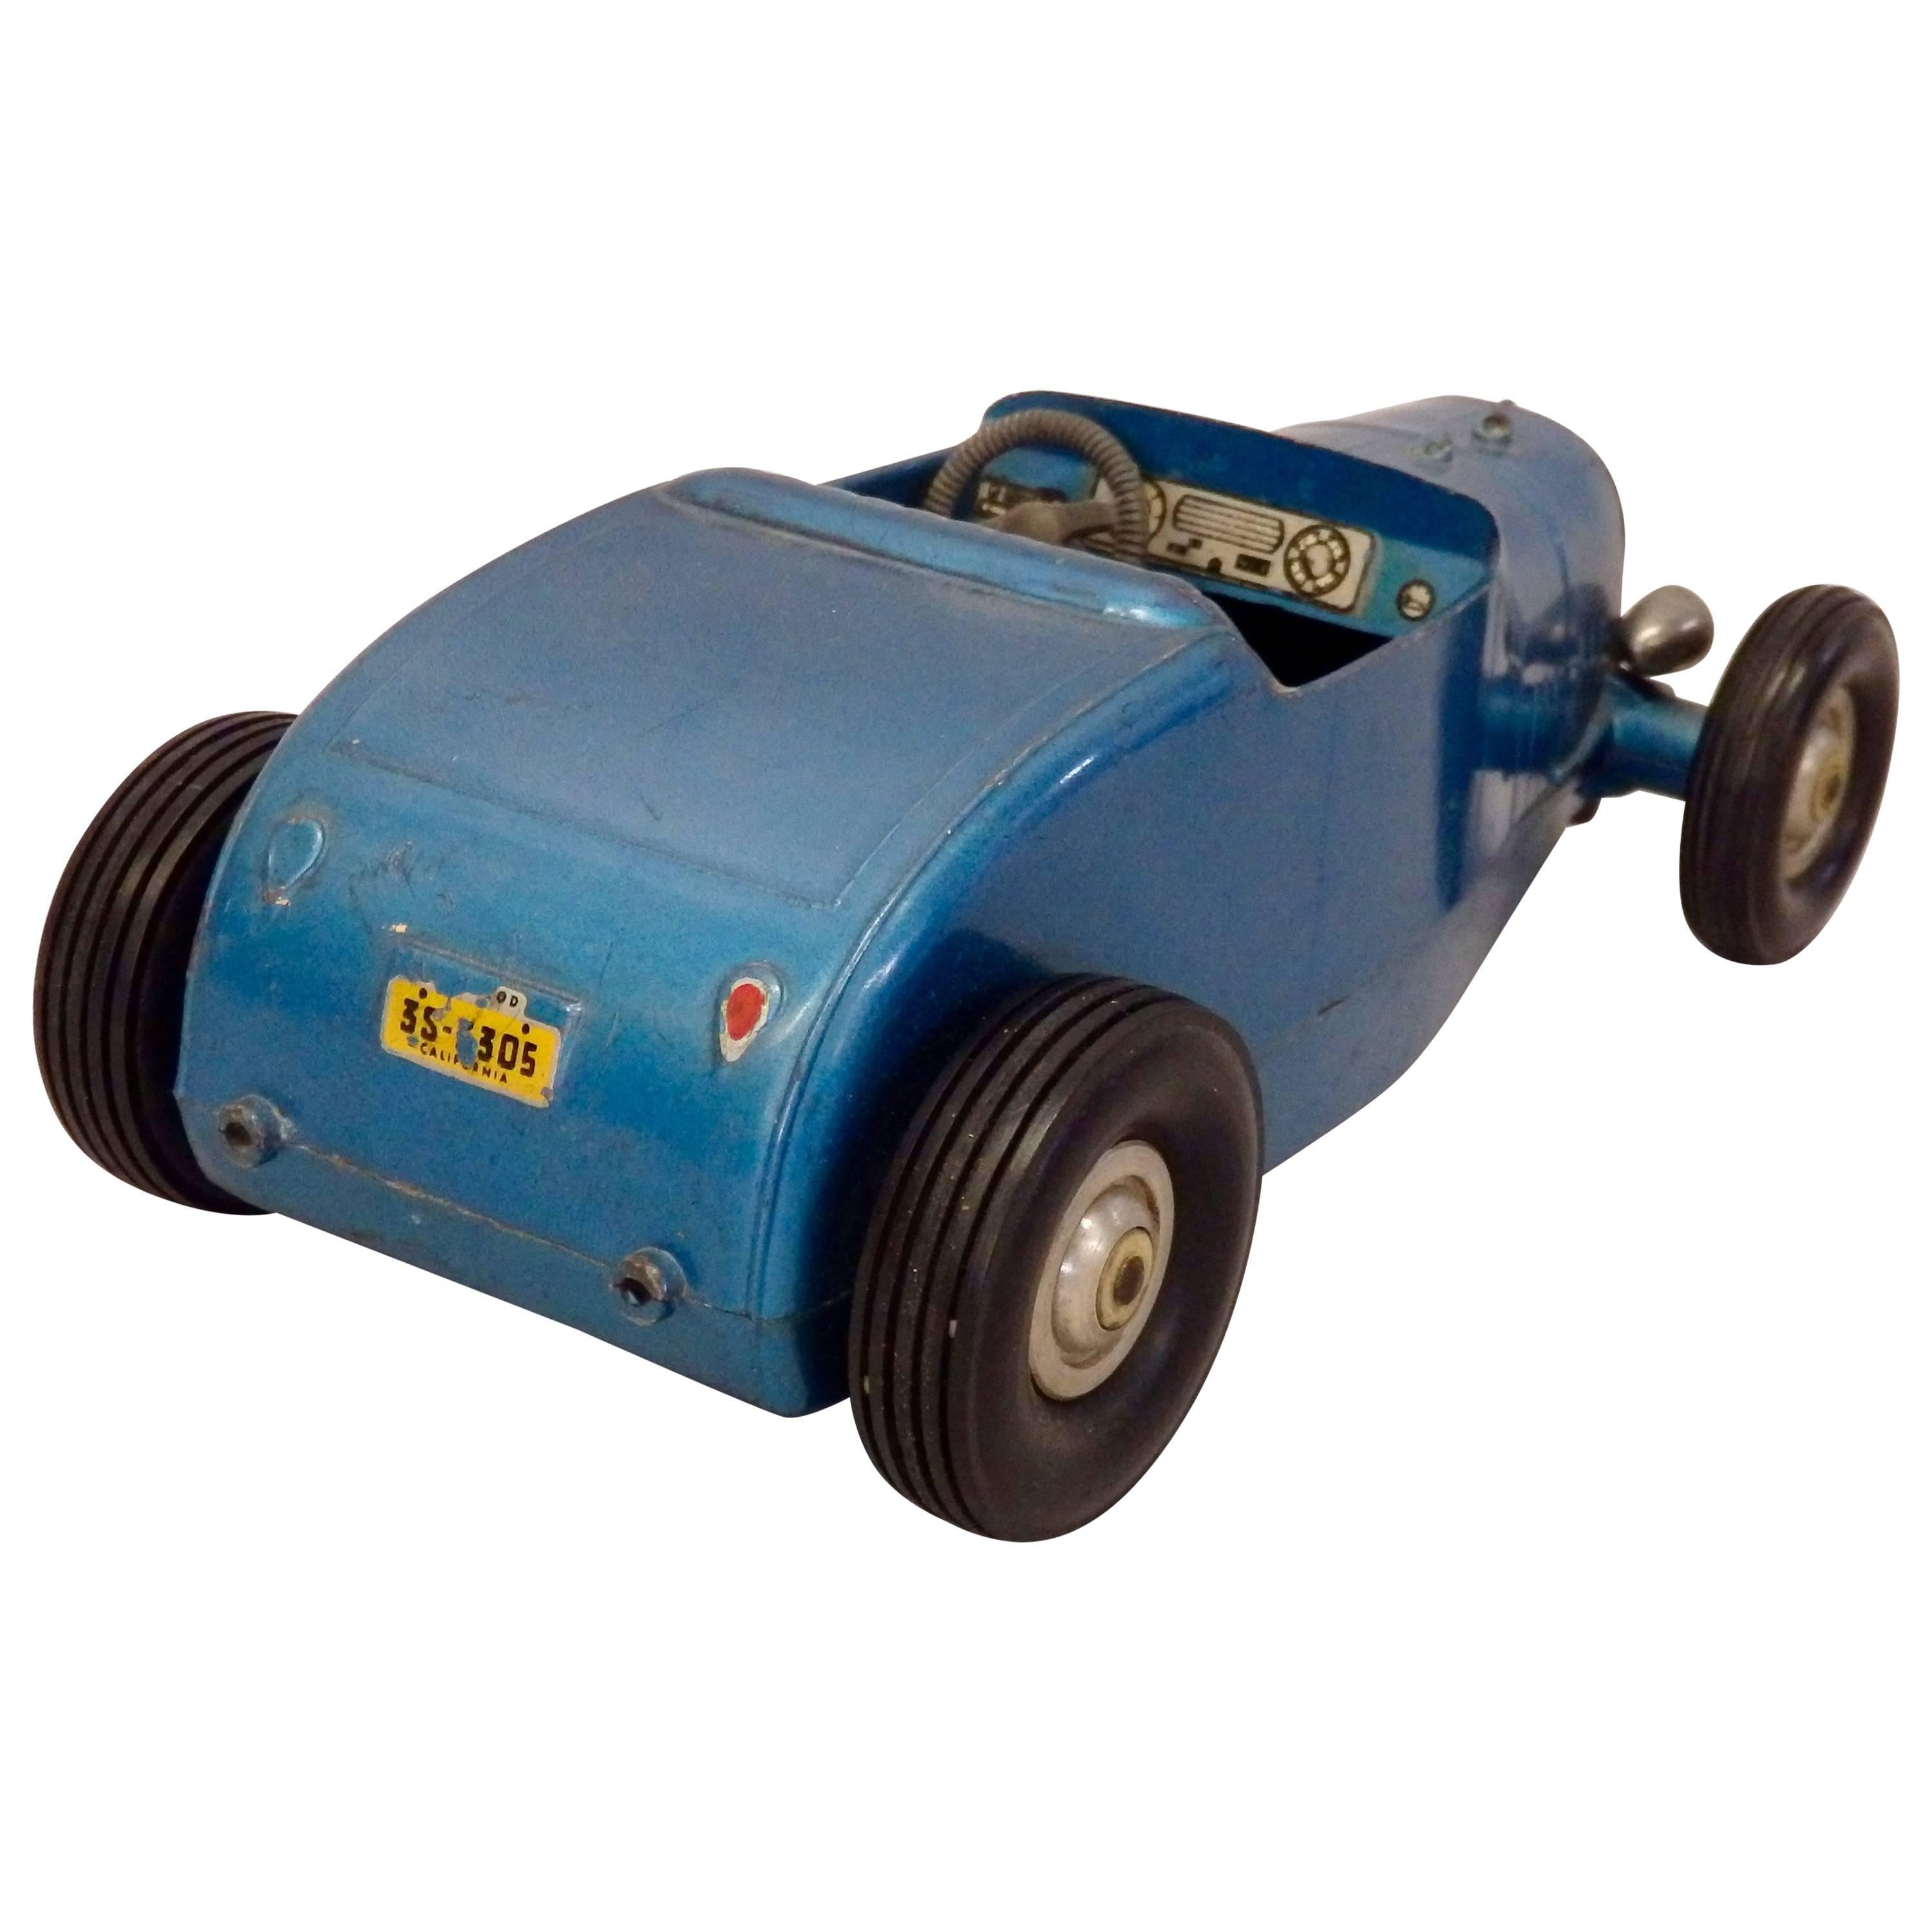 Toy Hot Rod Roadster Tether Car